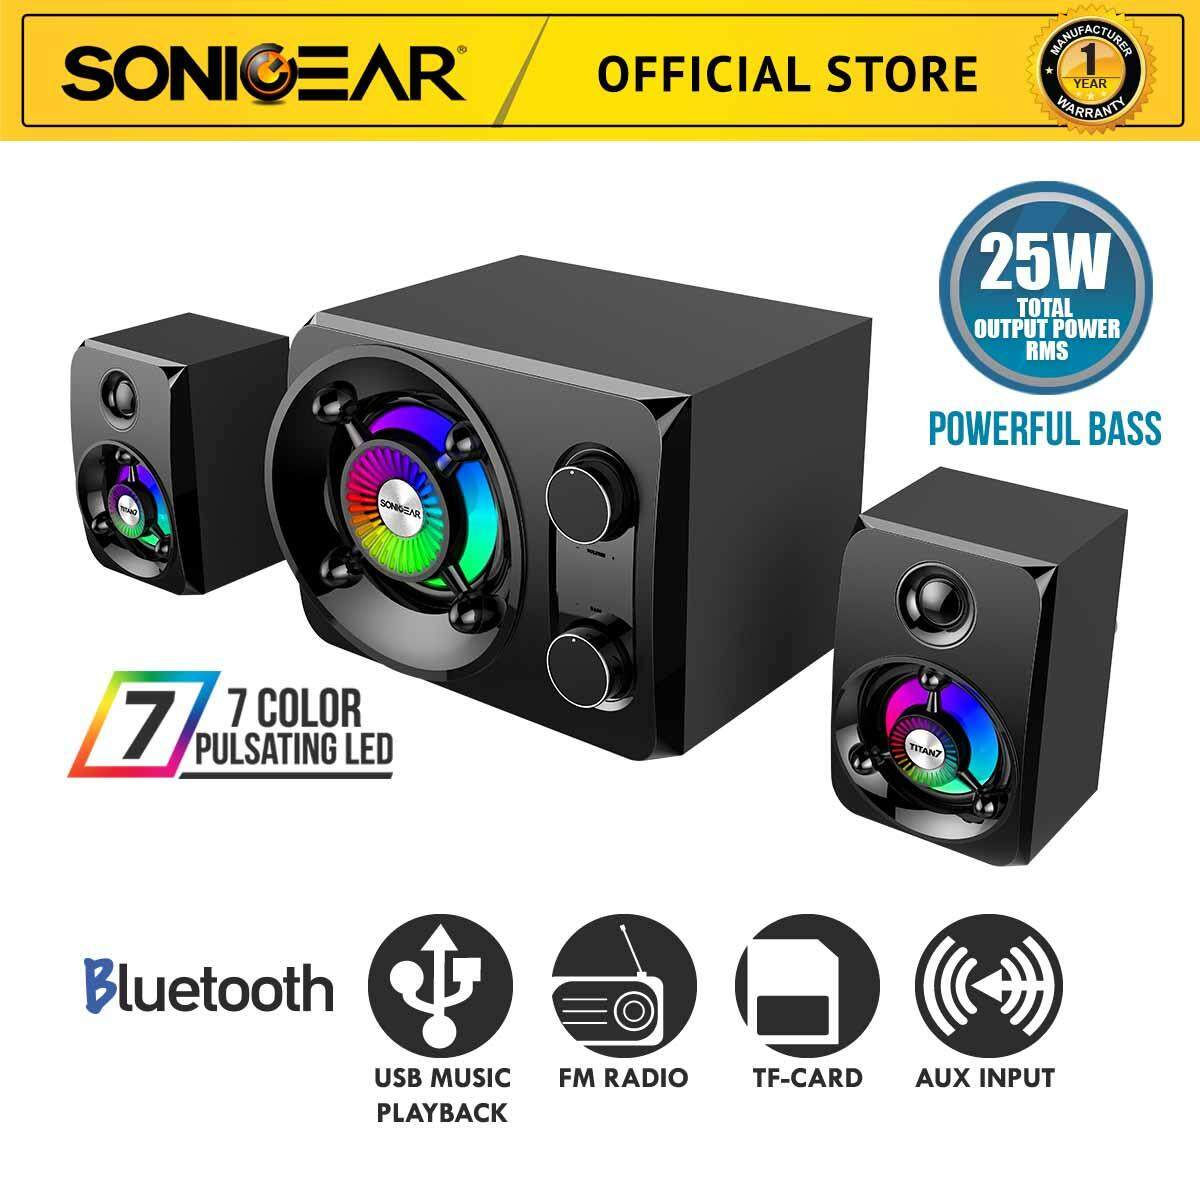 Sonicgear Titan 7 Btmi Bluetooth 2.1 Multimedia Speaker System With Usb Input, Sd Card, Fm Radio By Sonicgear Malaysia.